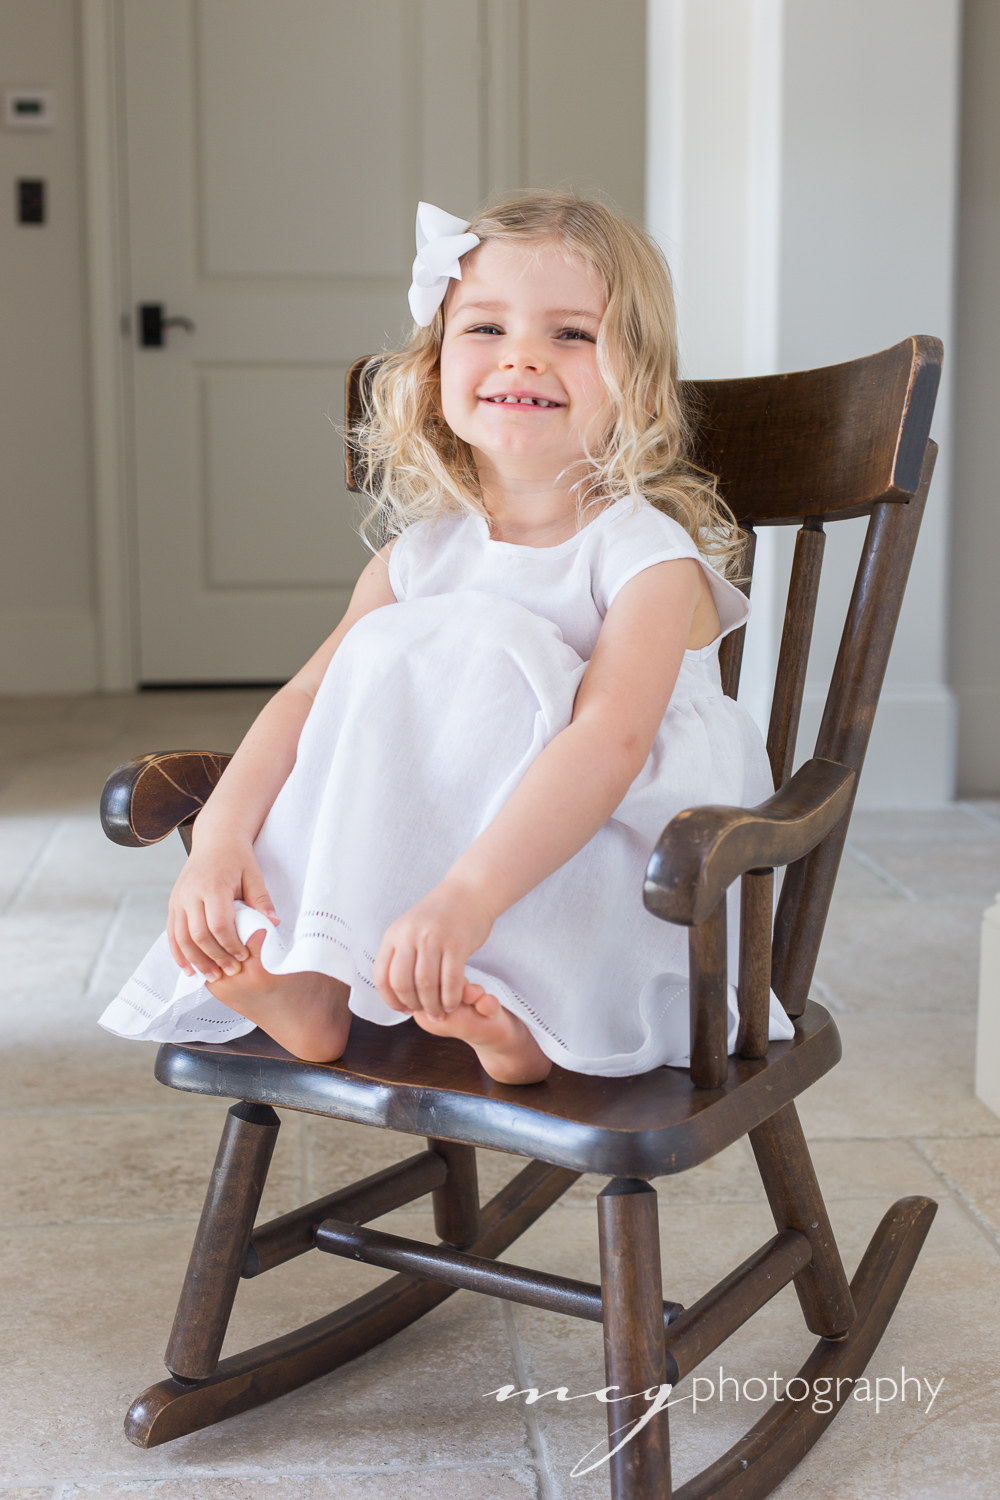 mcg_photography_home_portraits-rocking_chair.jpg